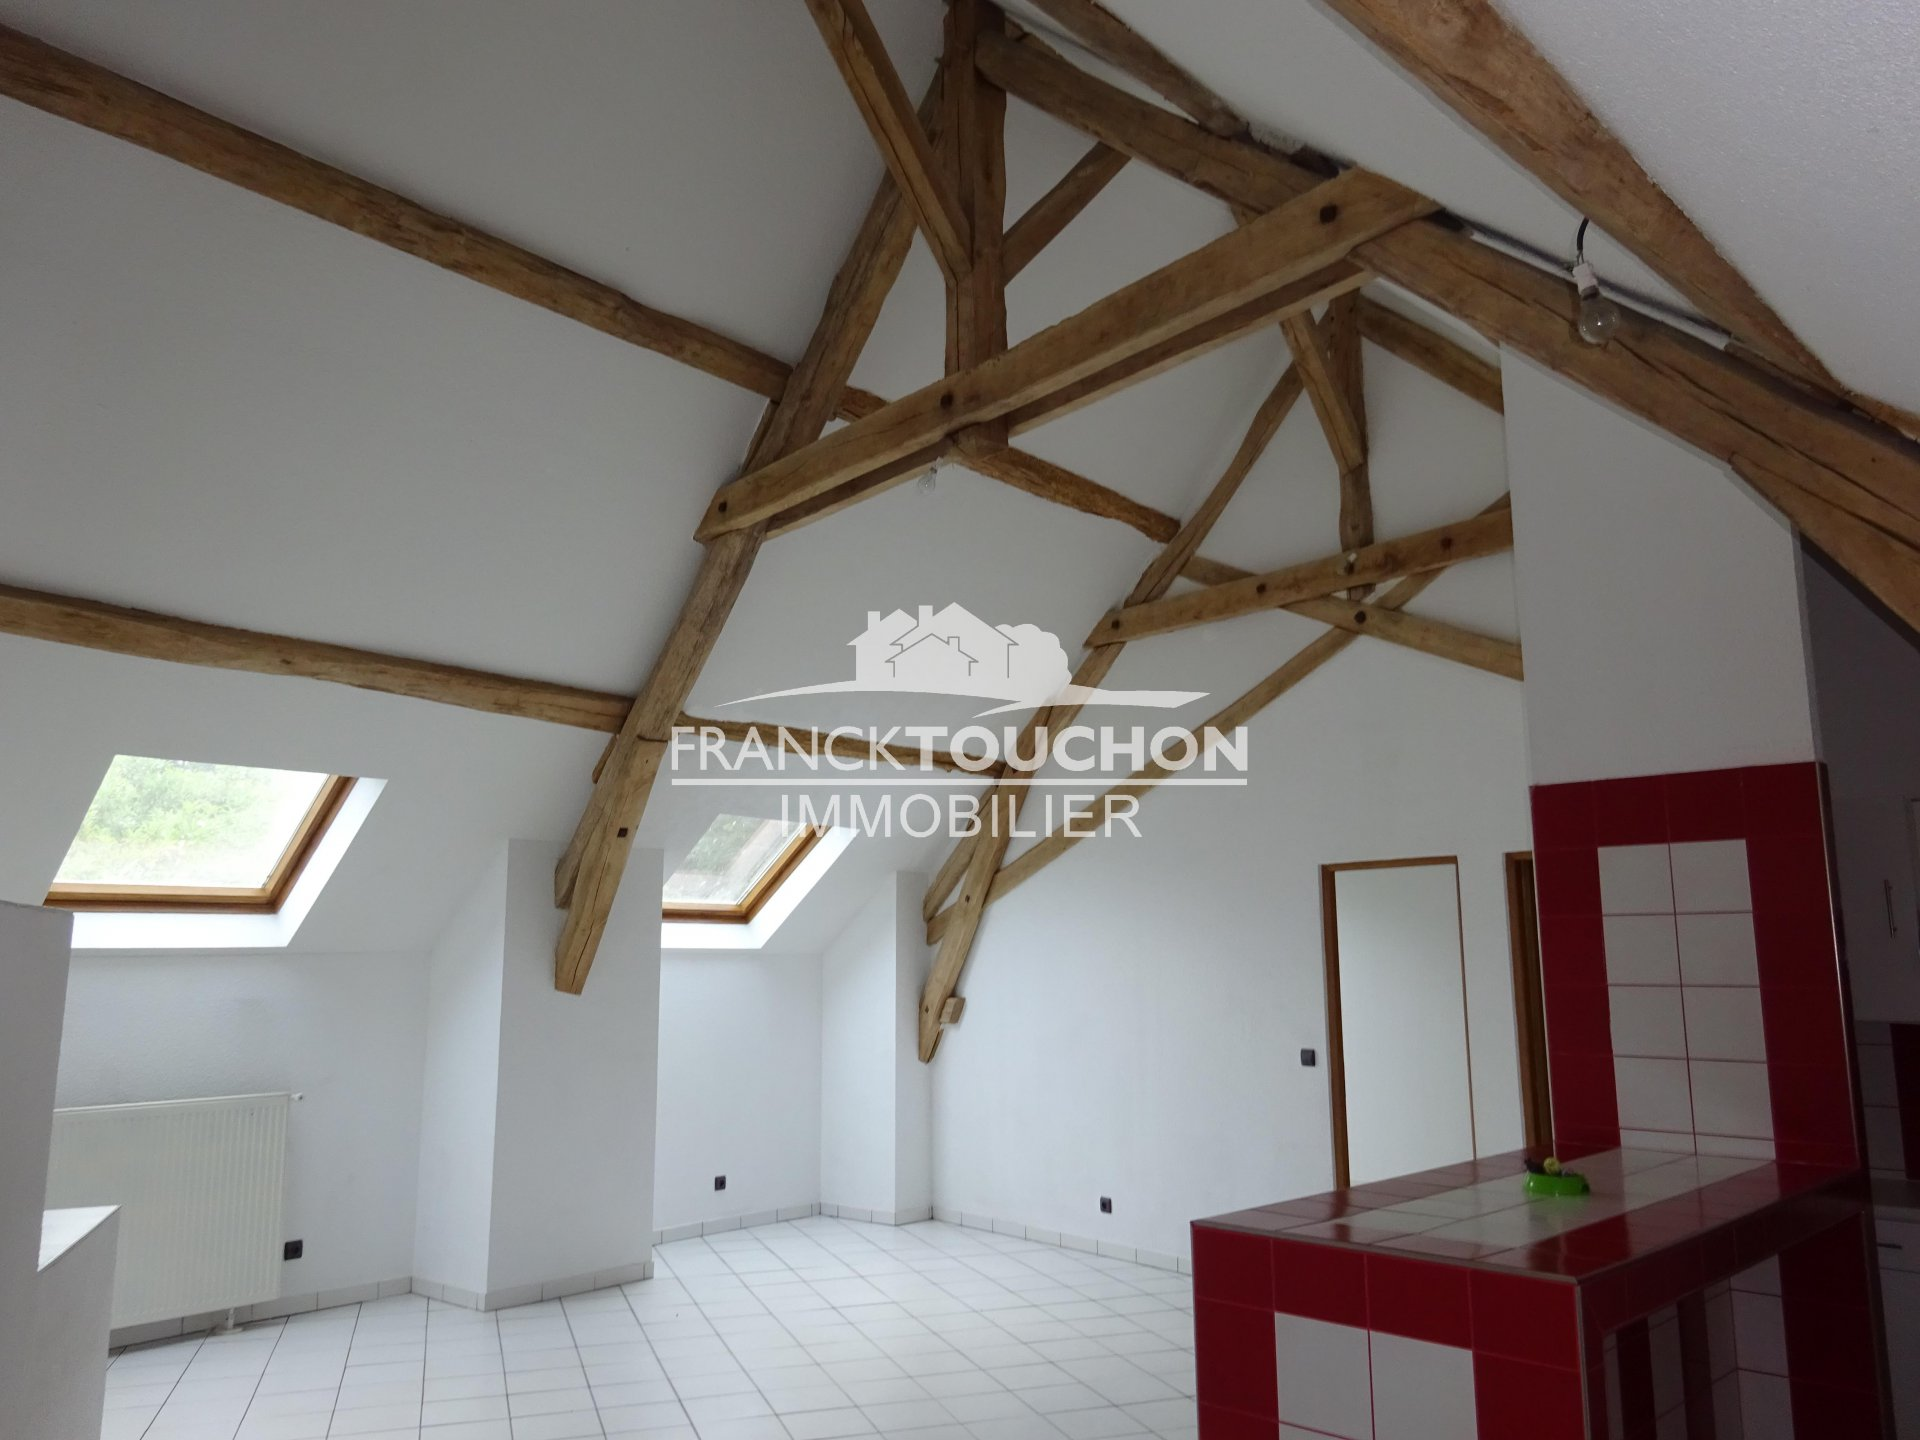 PROPRIETE de charme - beau potentiel - 1h de PARIS - 30 min de FONTAINEBLEAU - SUD 77 - 493 m² dont 1 appartement de 75 m² hab